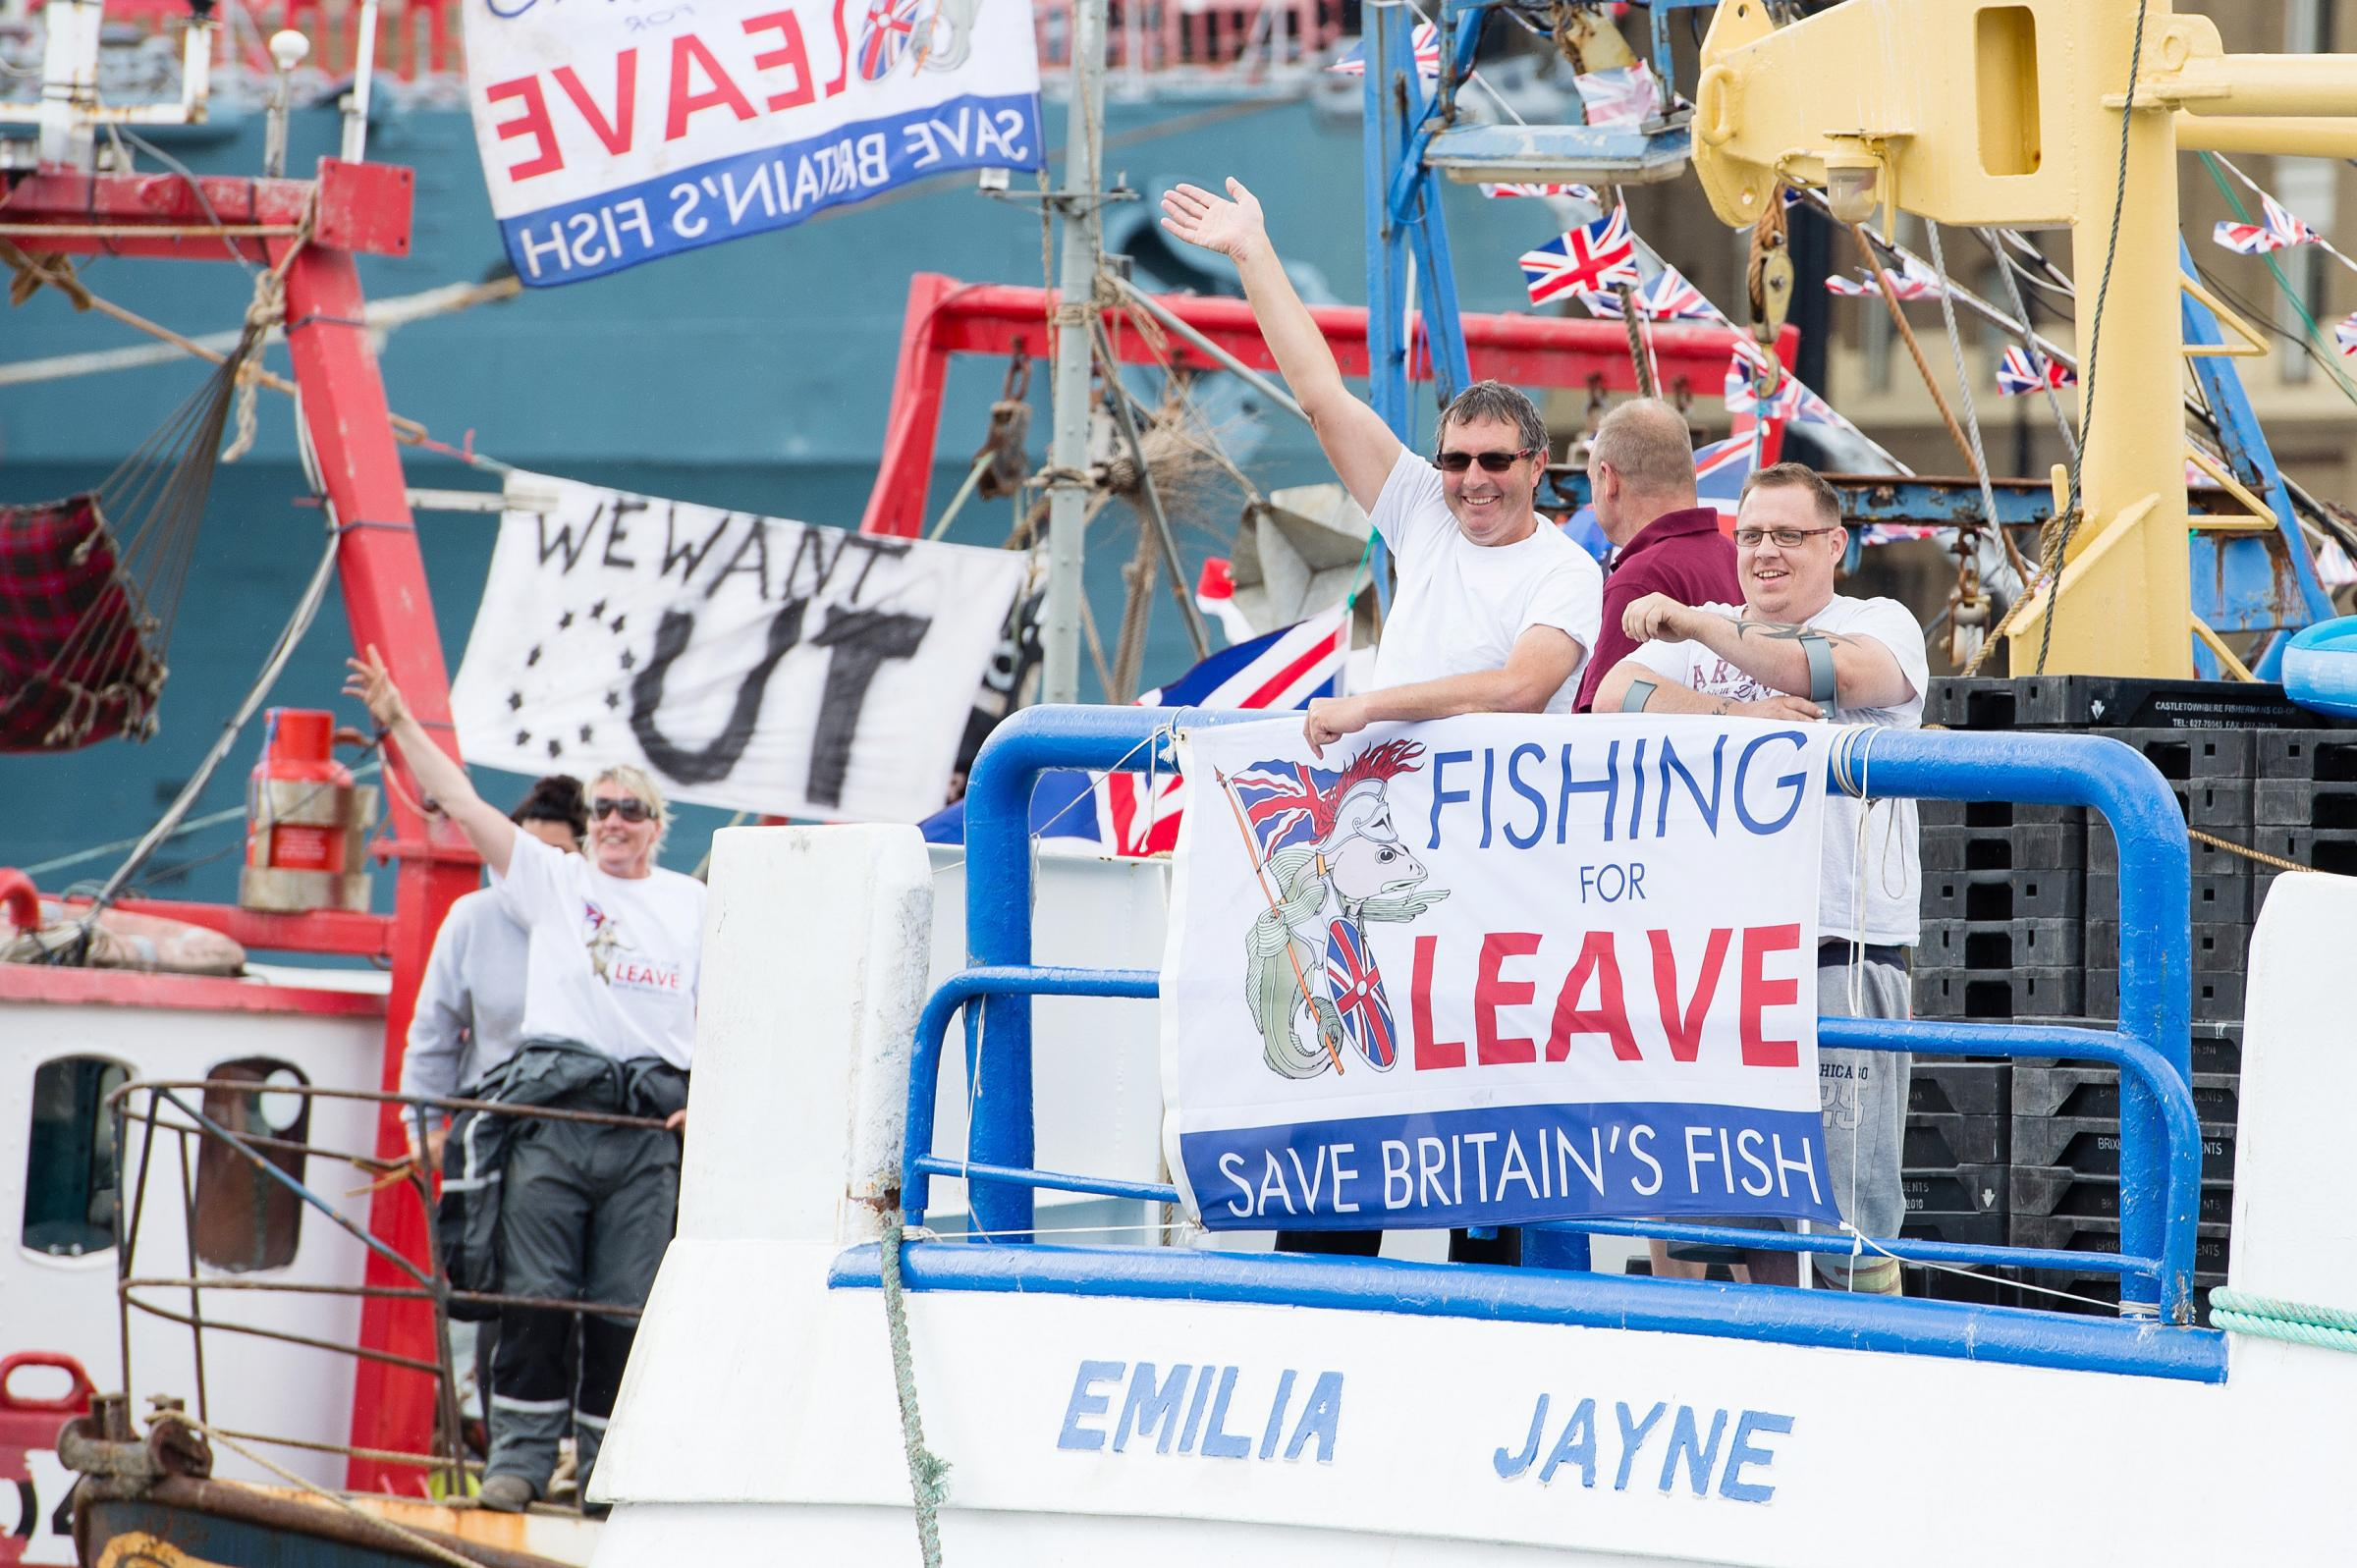 Fishermen have long complained about the EU's Common Fisheries Policy